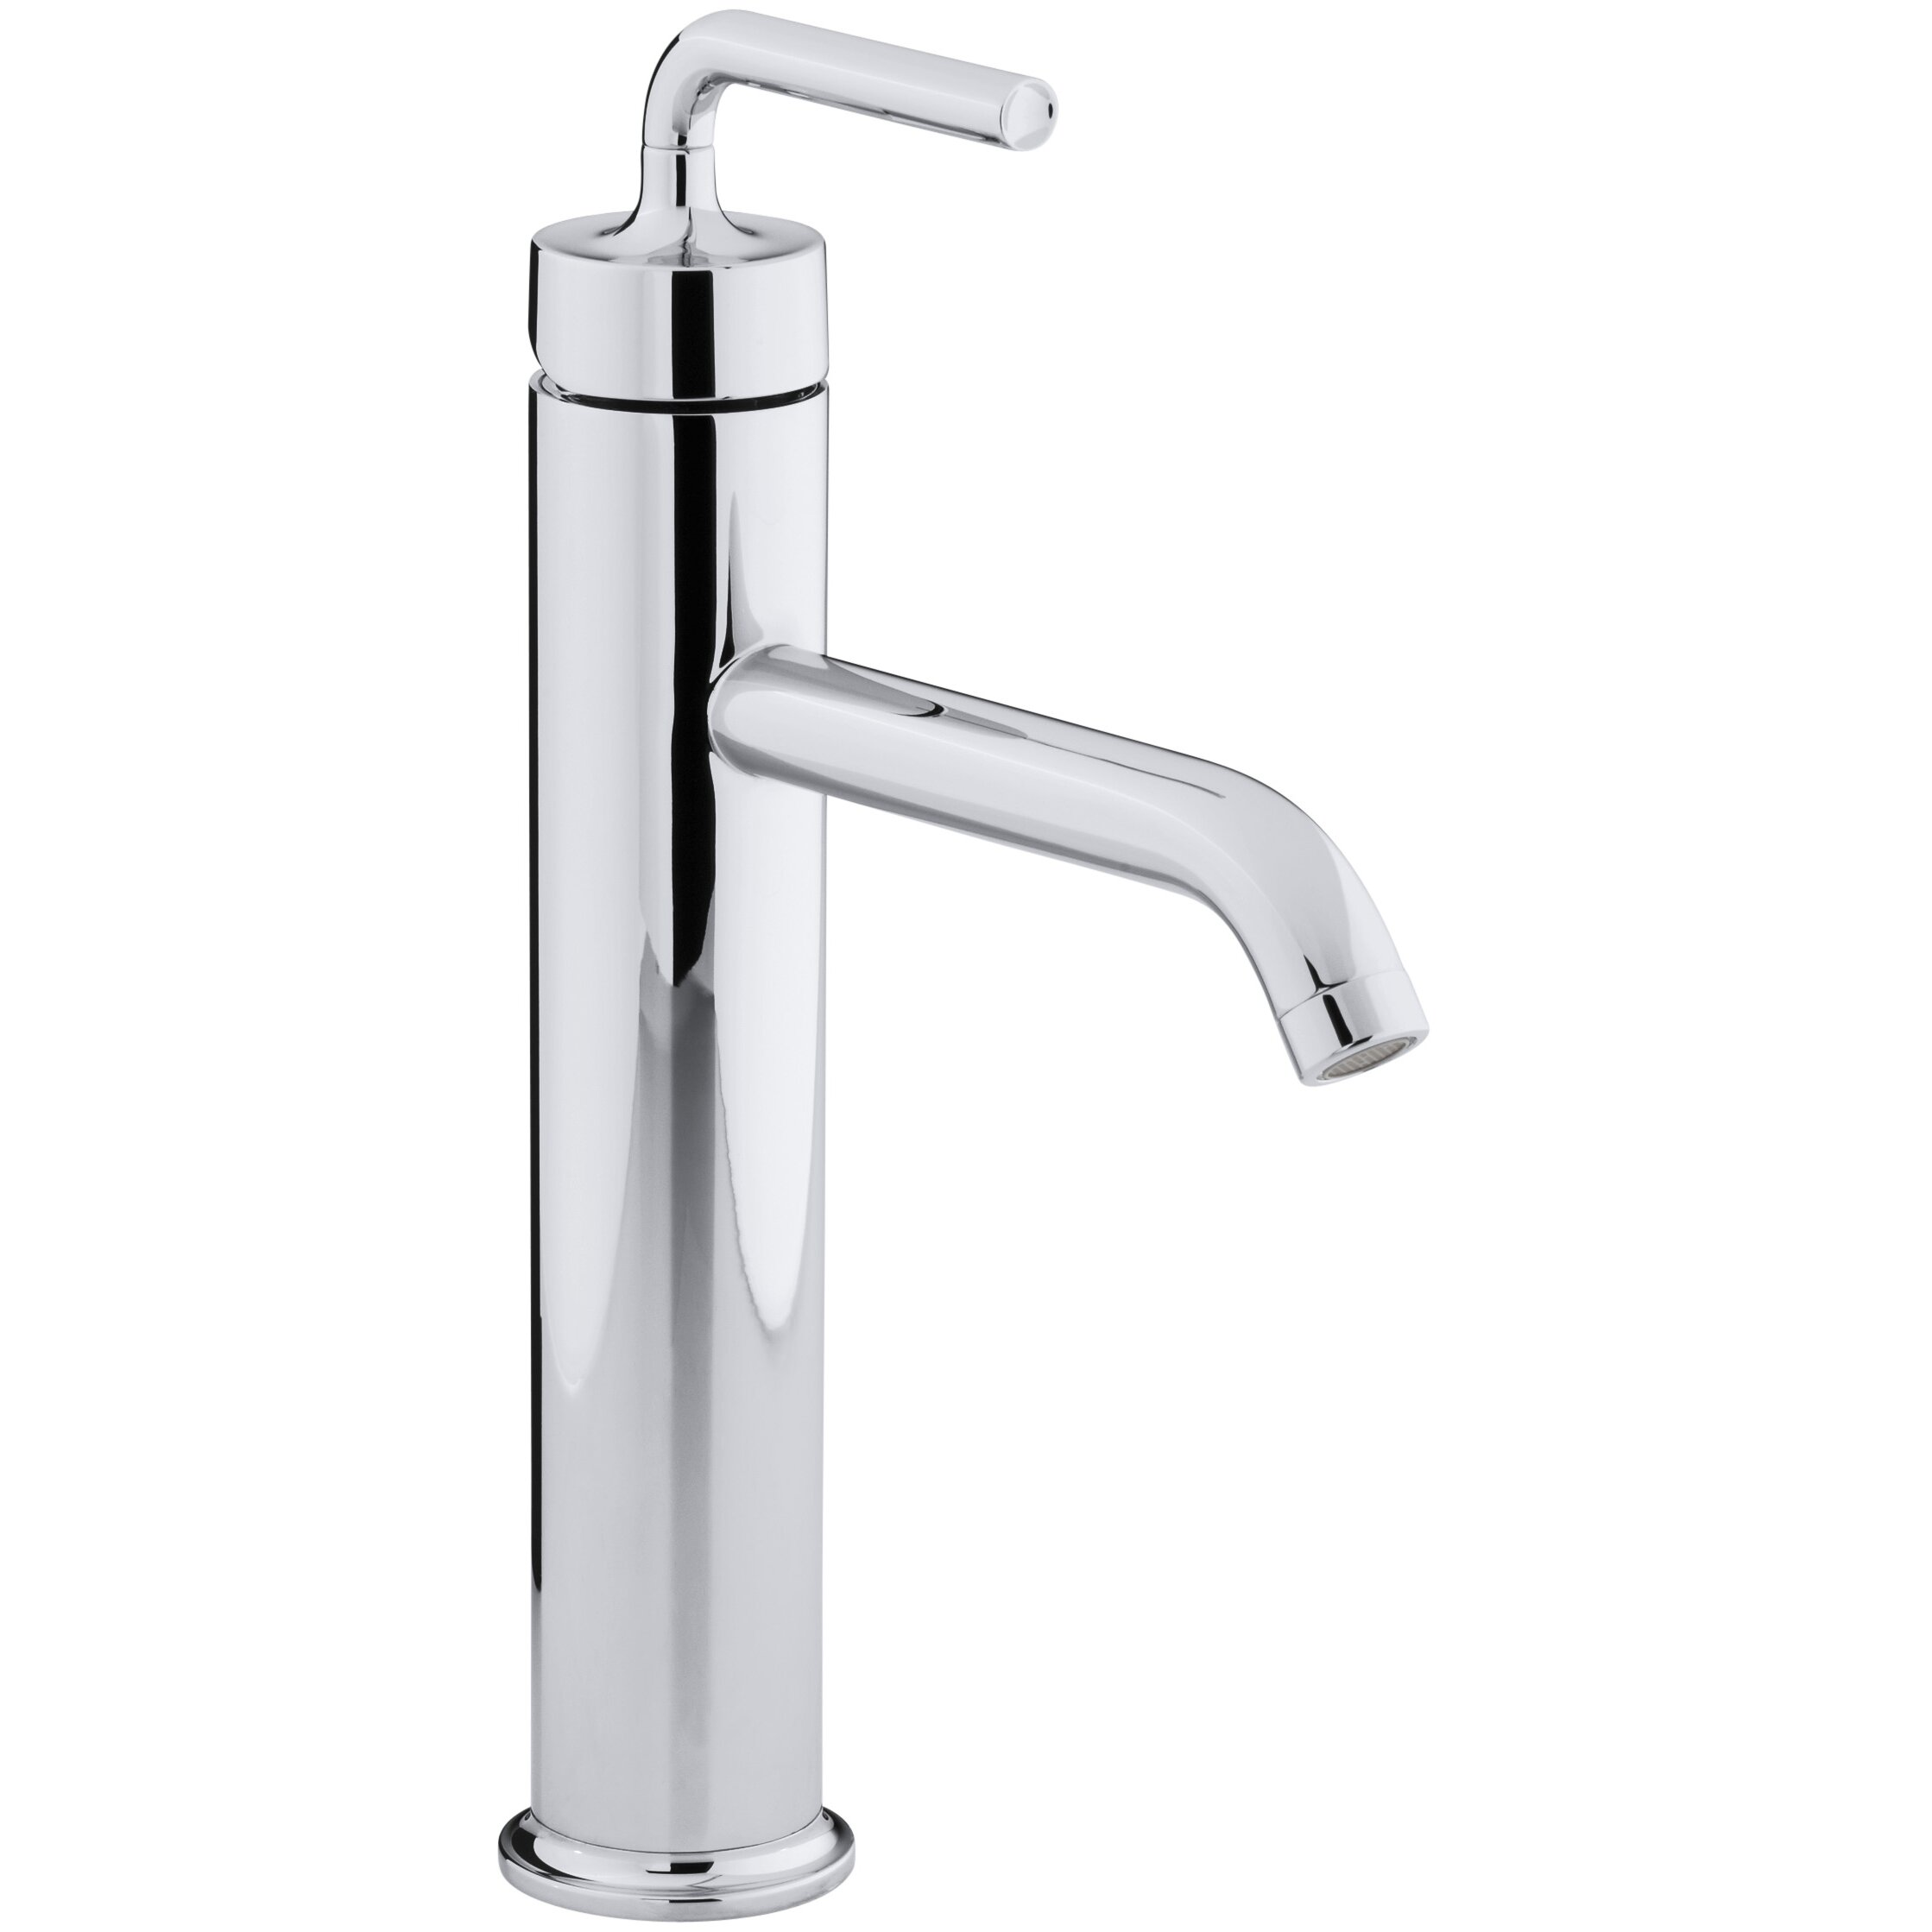 Kohler Single Handle Bathroom Faucet My Web Value - Kohler fairfax single hole bathroom faucet